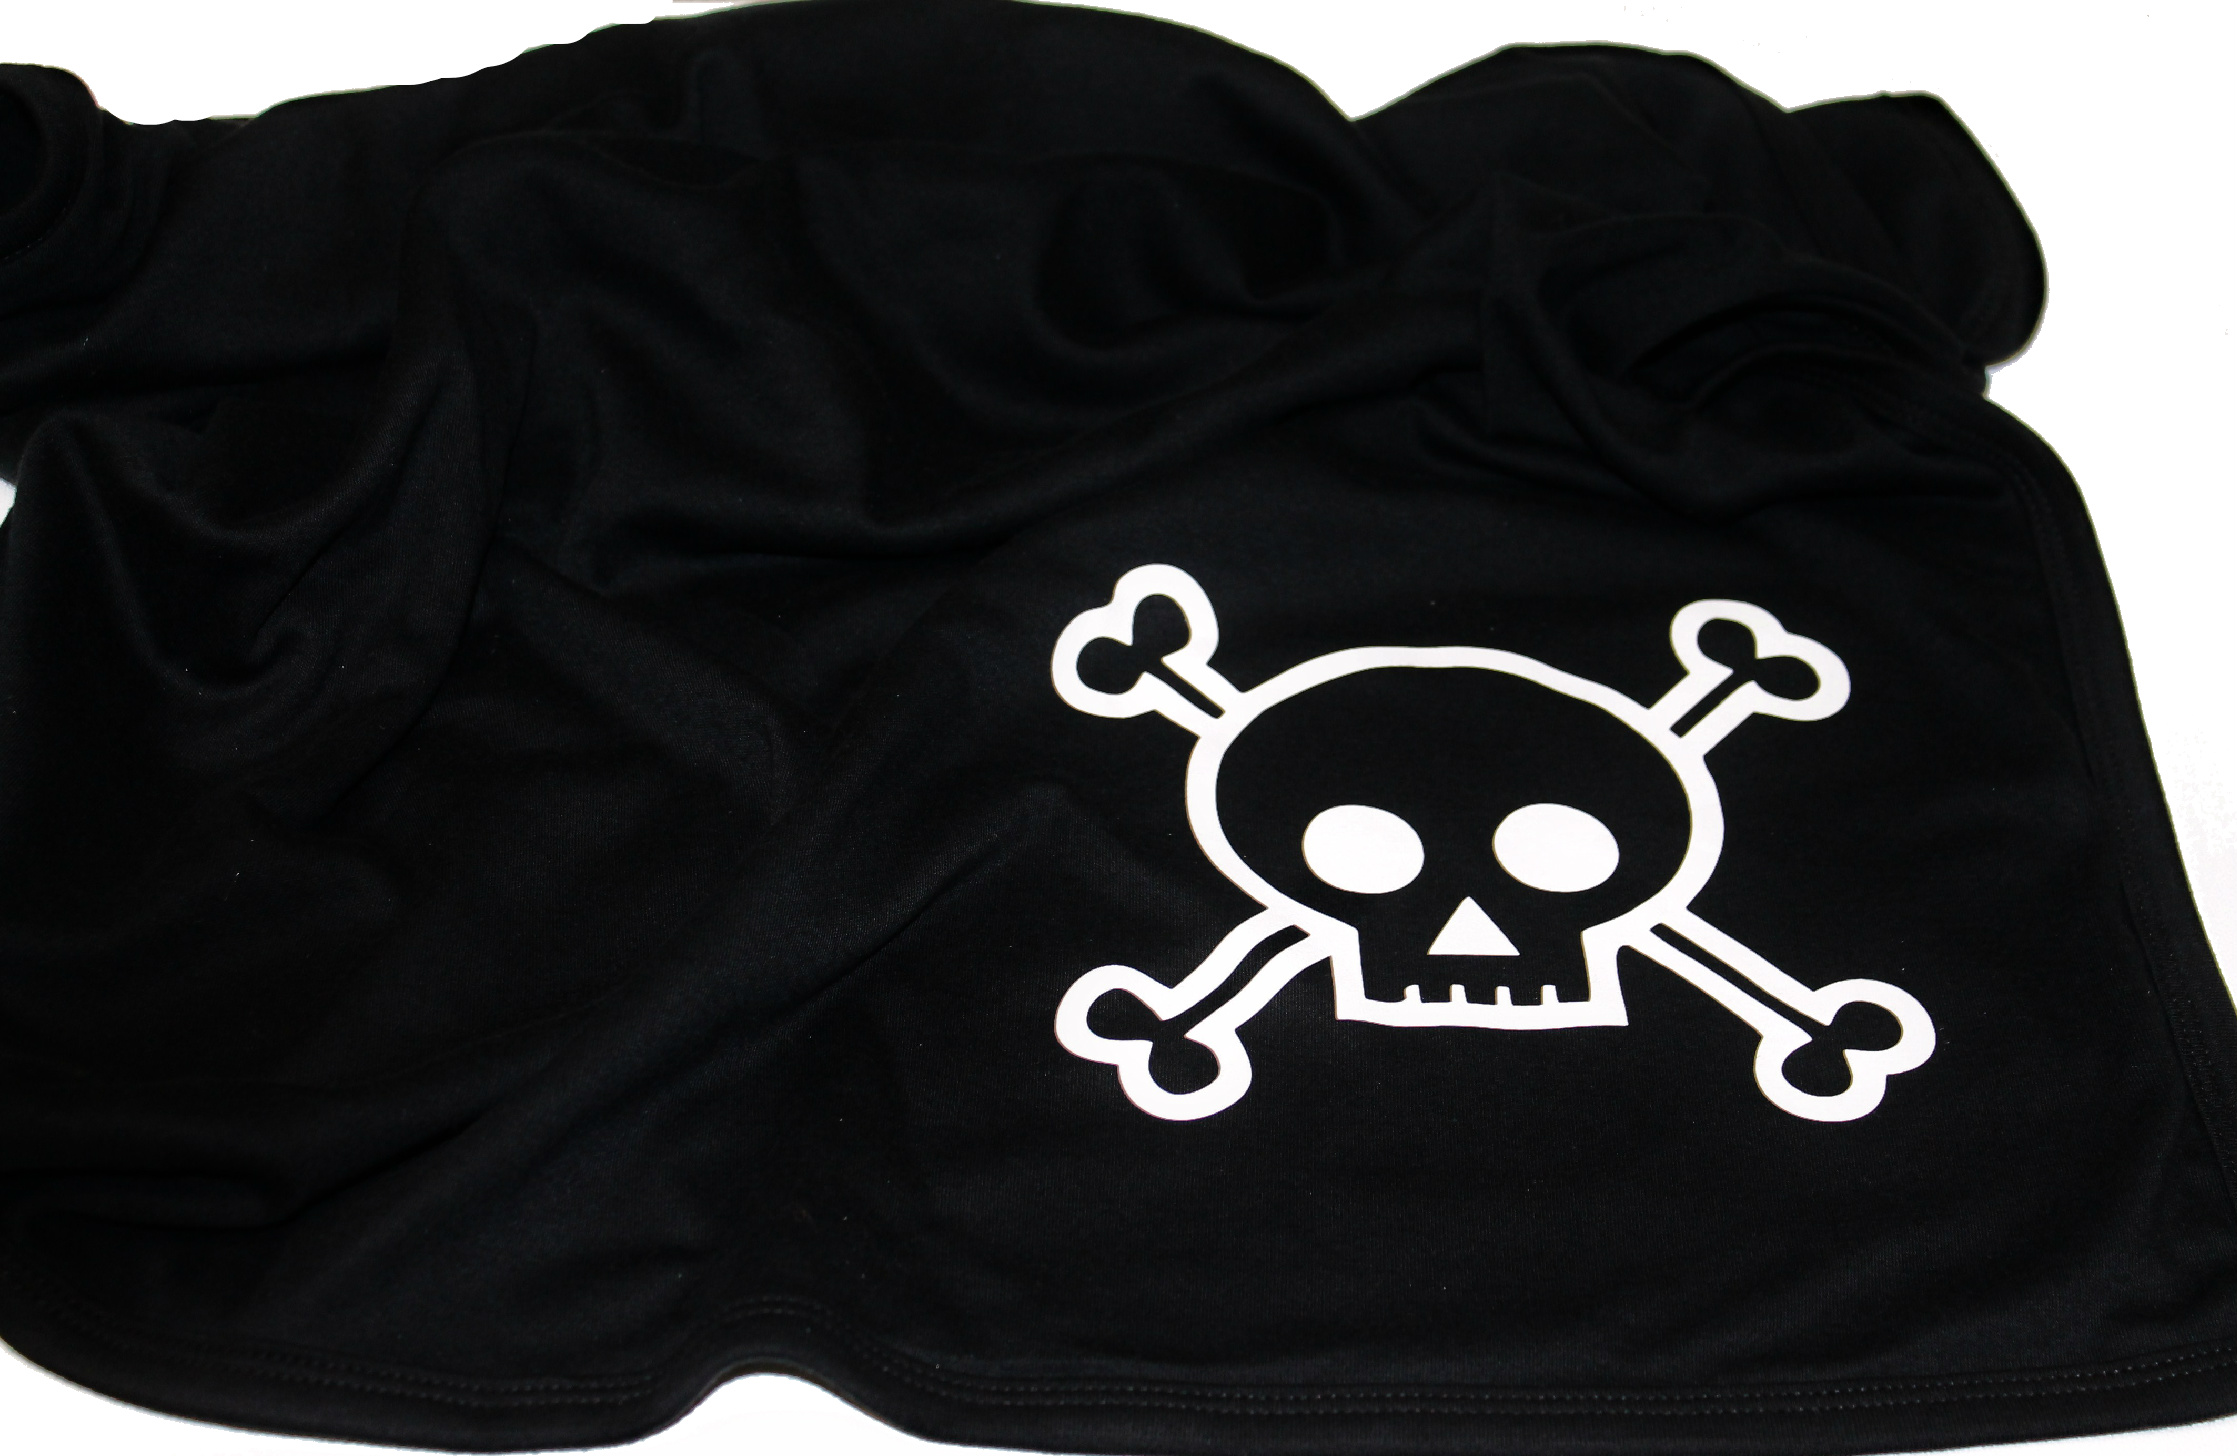 Baby Blanket for Little Pirates- skull and crossbones